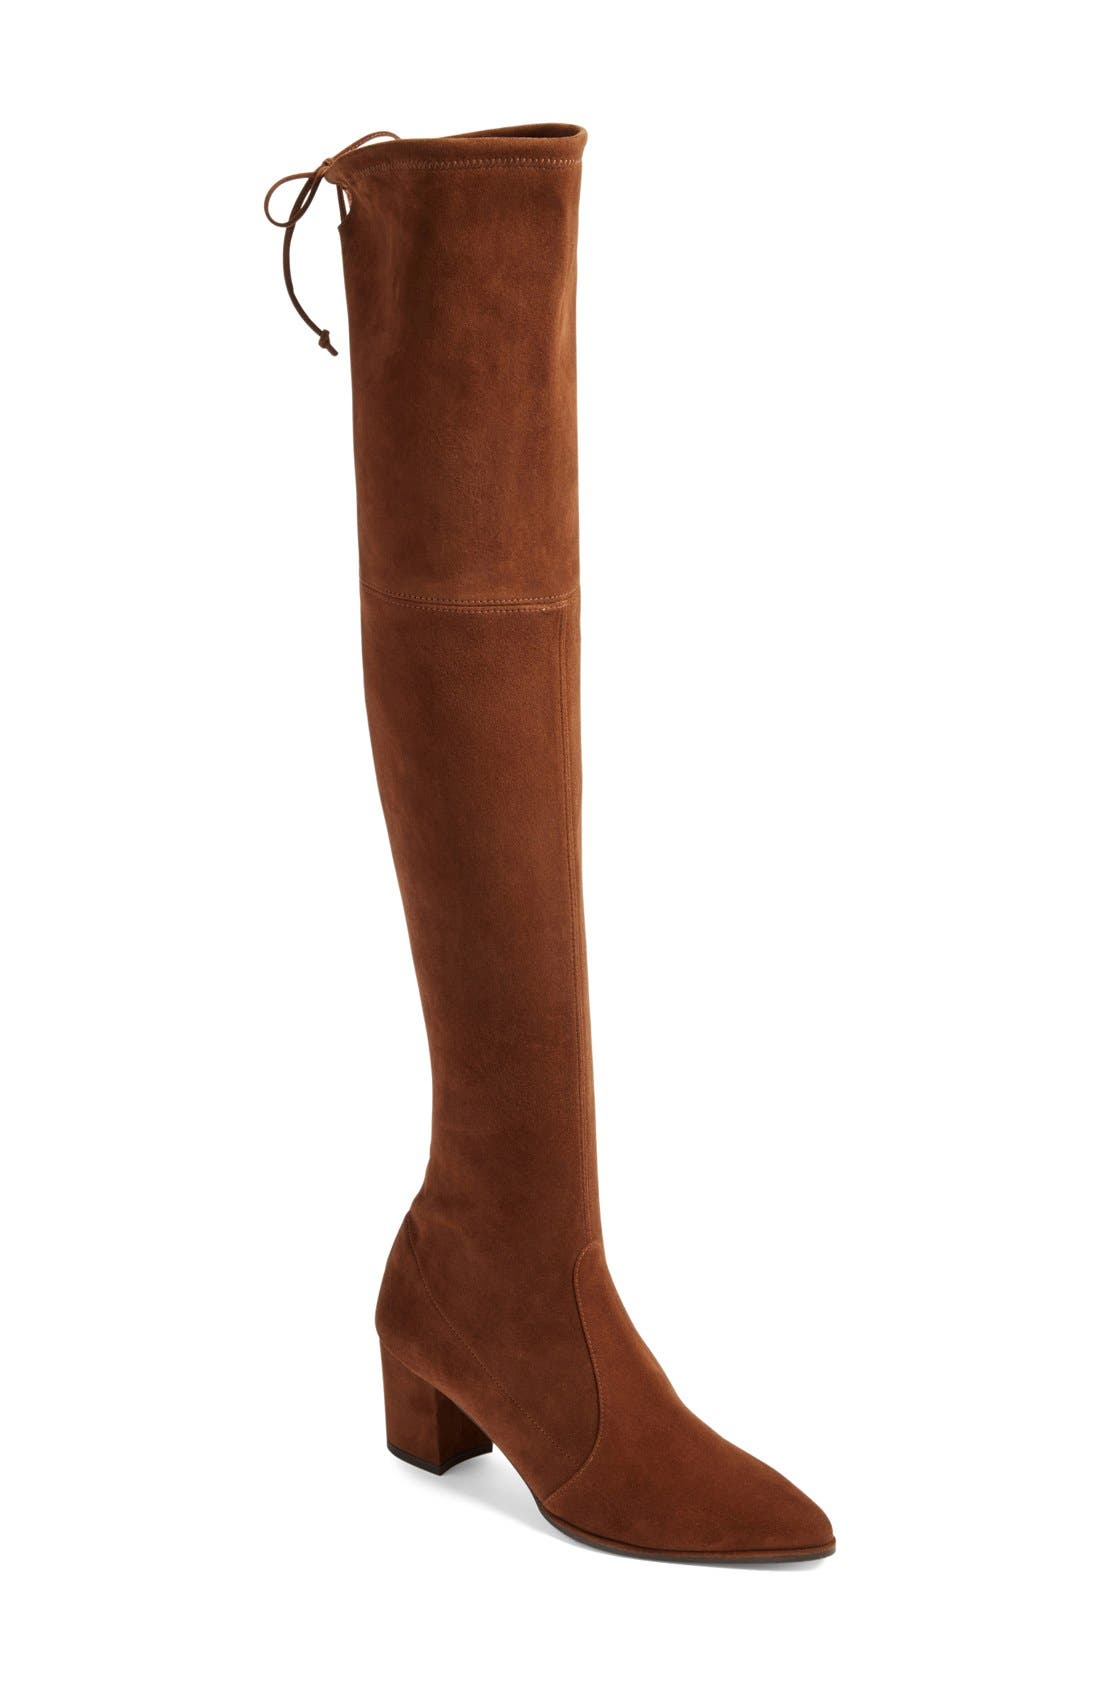 Thighland Over the Knee Boot,                         Main,                         color, Walnut Suede